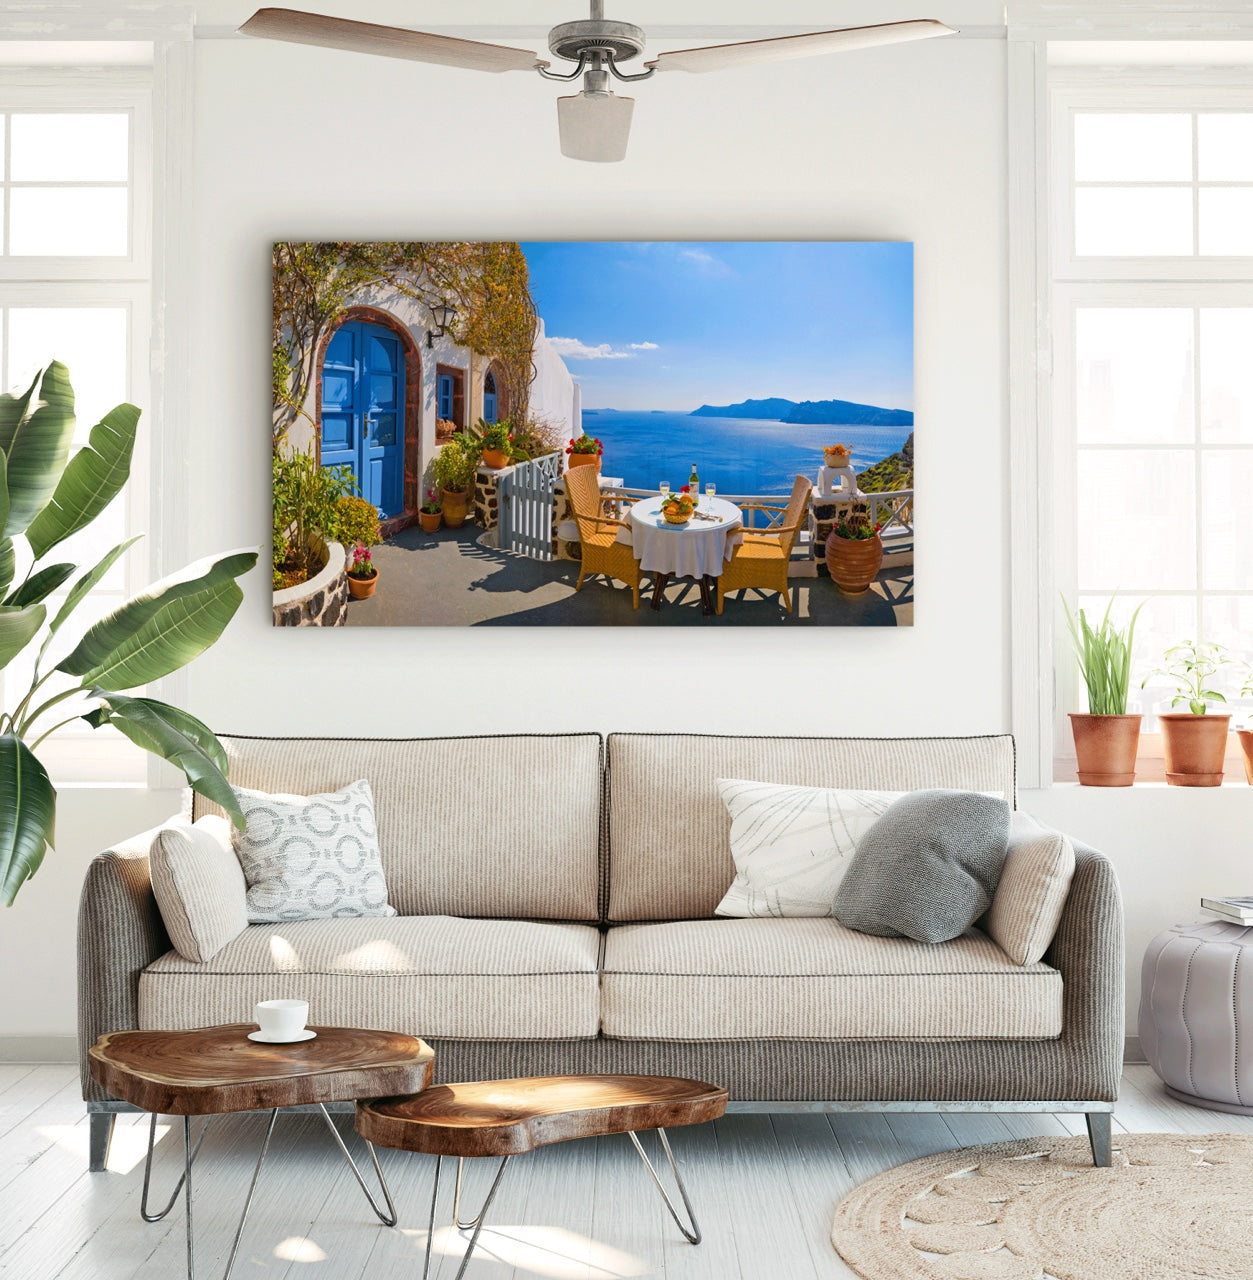 Greece fine art photography on living room wall